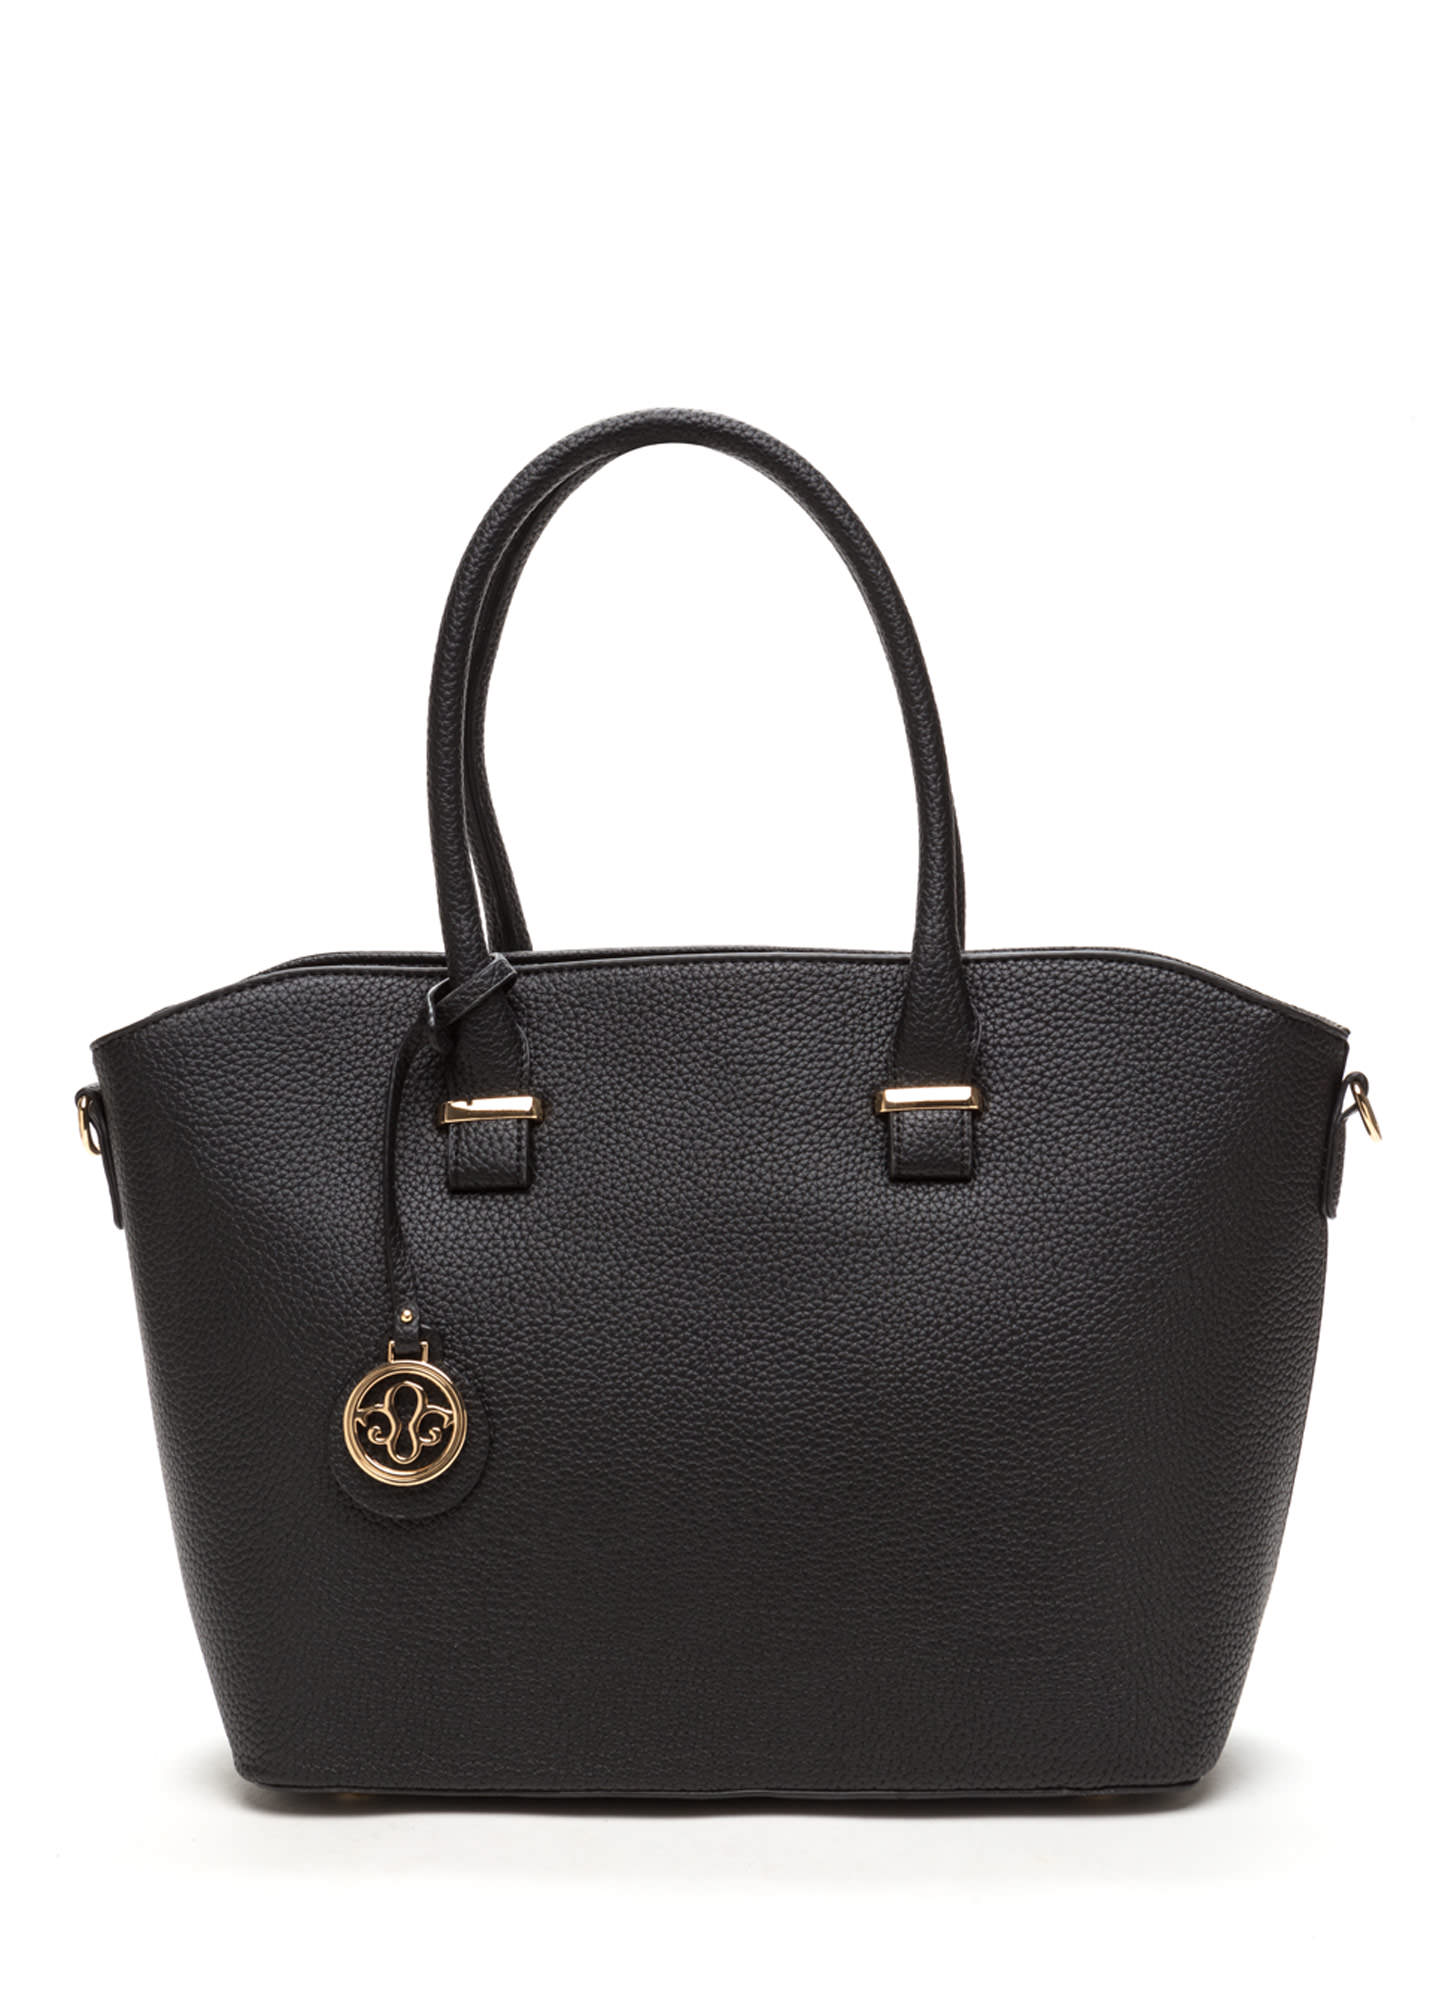 First Lady Faux Leather Bag Set BLACK